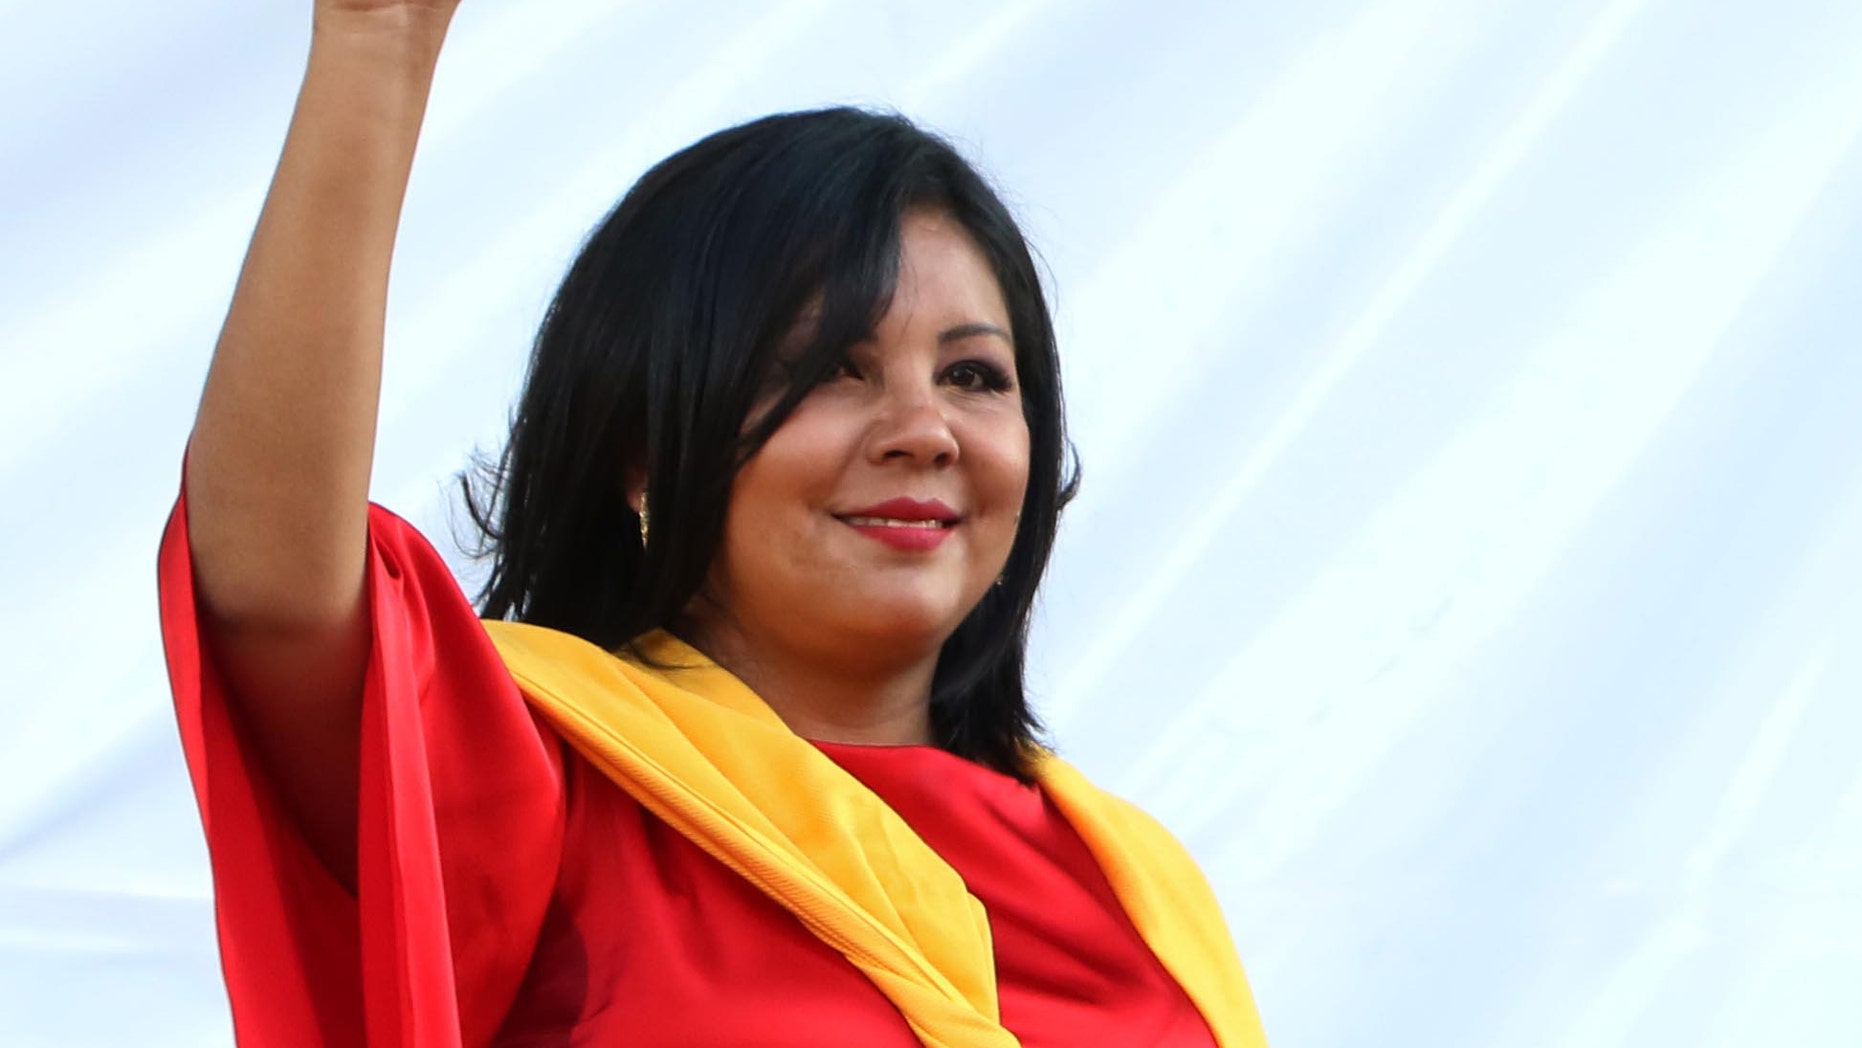 In this Friday, Jan. 1, 2016 photo, Gisela Mota waves during her swearing in ceremony as mayor of Temixco, Morelos State, Mexico. The Morelos state Public Security Commission says attackers invaded Mota's house on Saturday morning and killed her. (AP Photo/Tony Rivera)